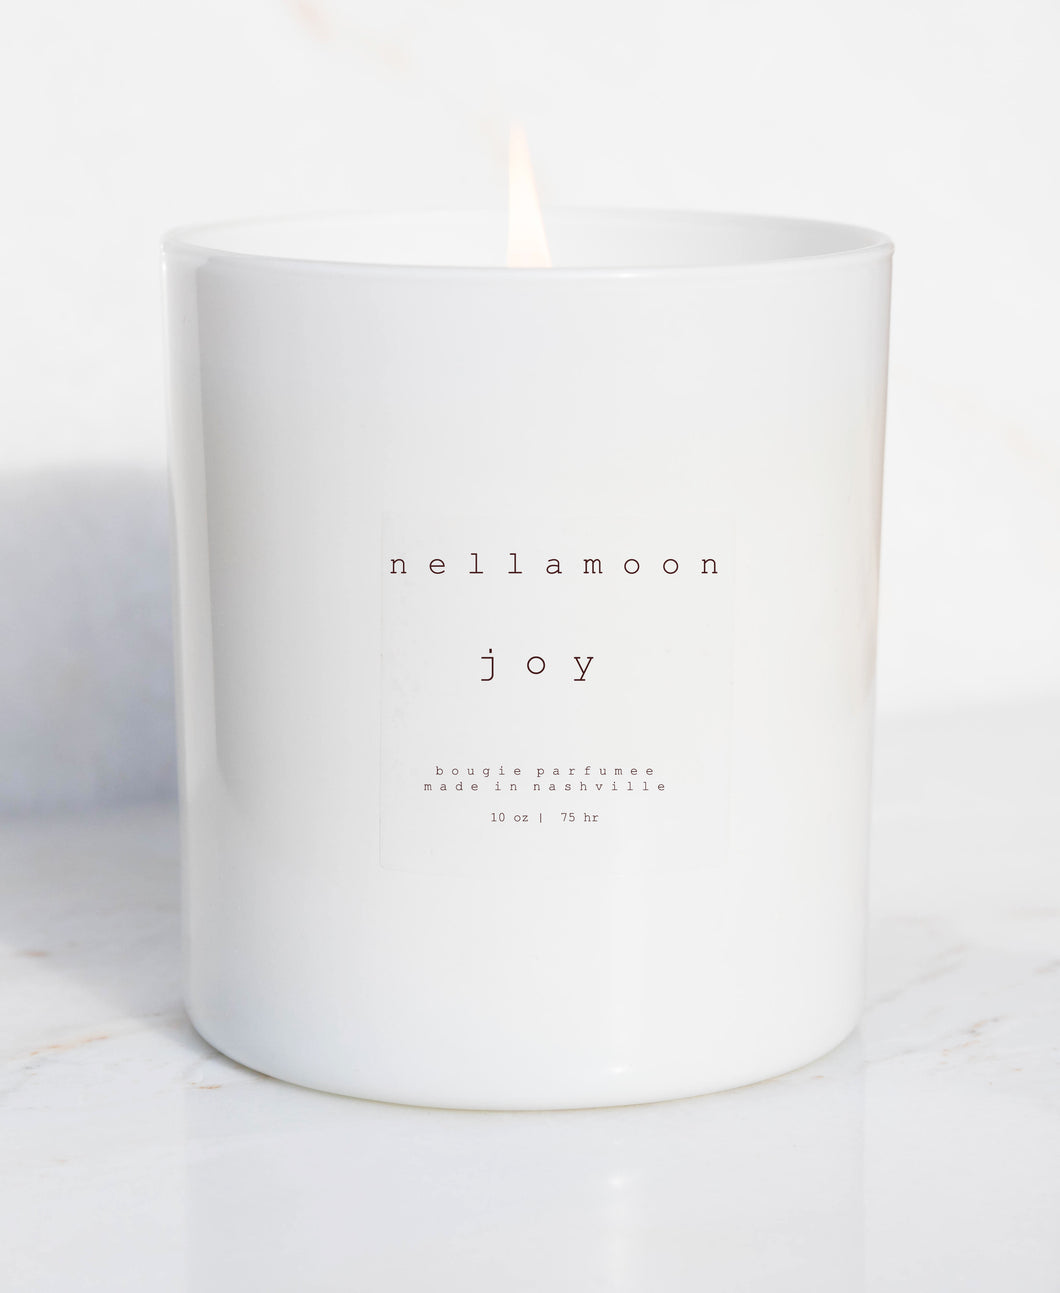 joy: grapefruit, mangosteen, peach